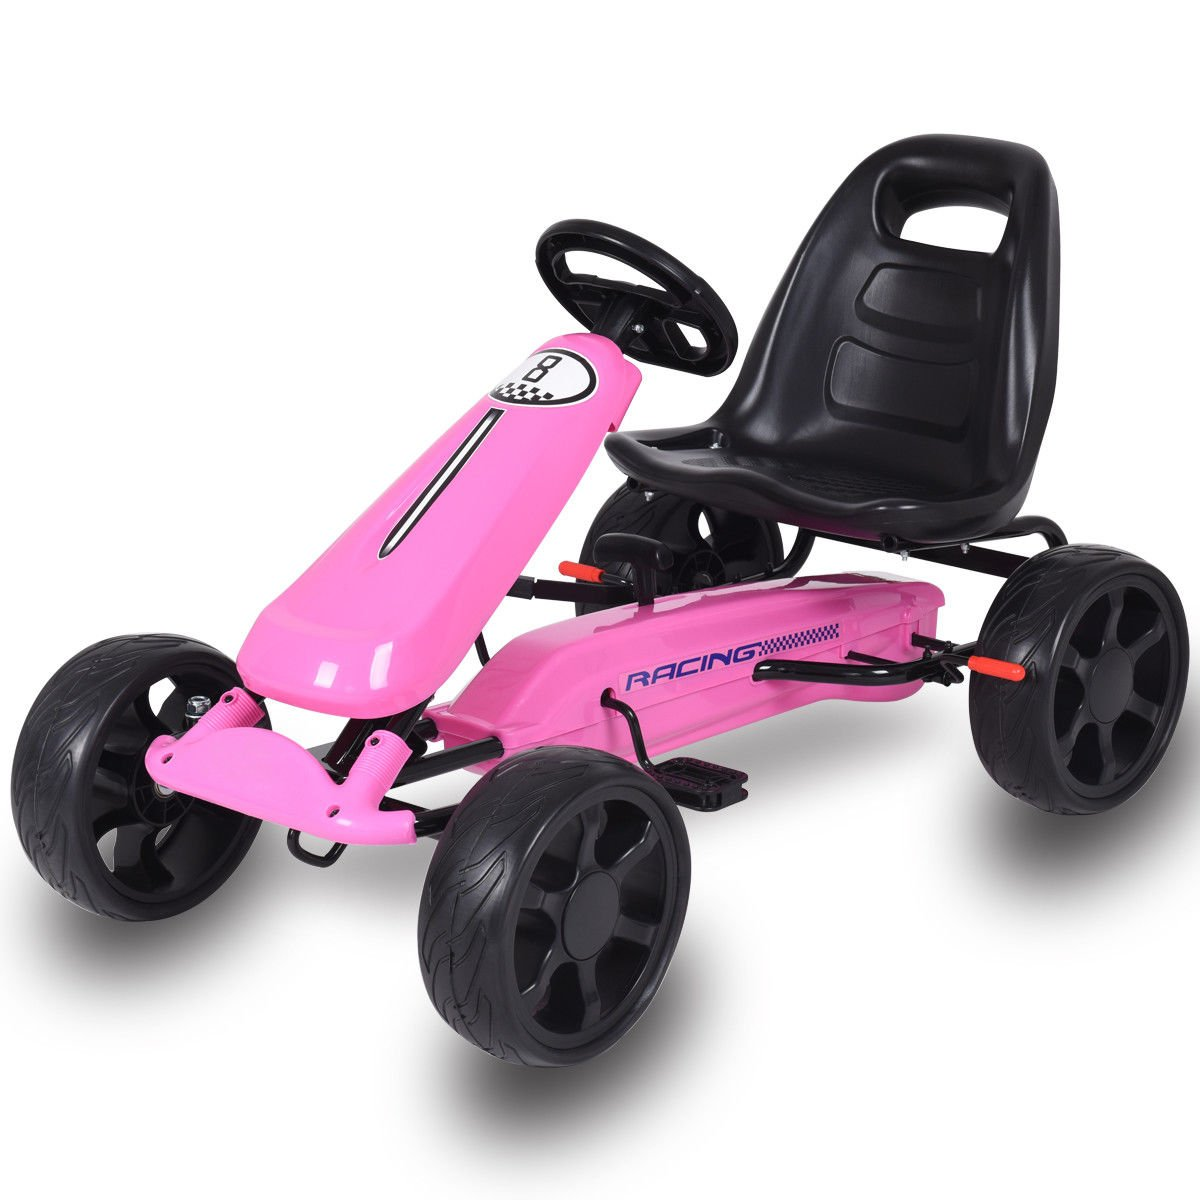 Costzon Go Kart, 4 Wheel Powered Racer Outdoor Toy, Kids Ride On Pedal Car (Pink)